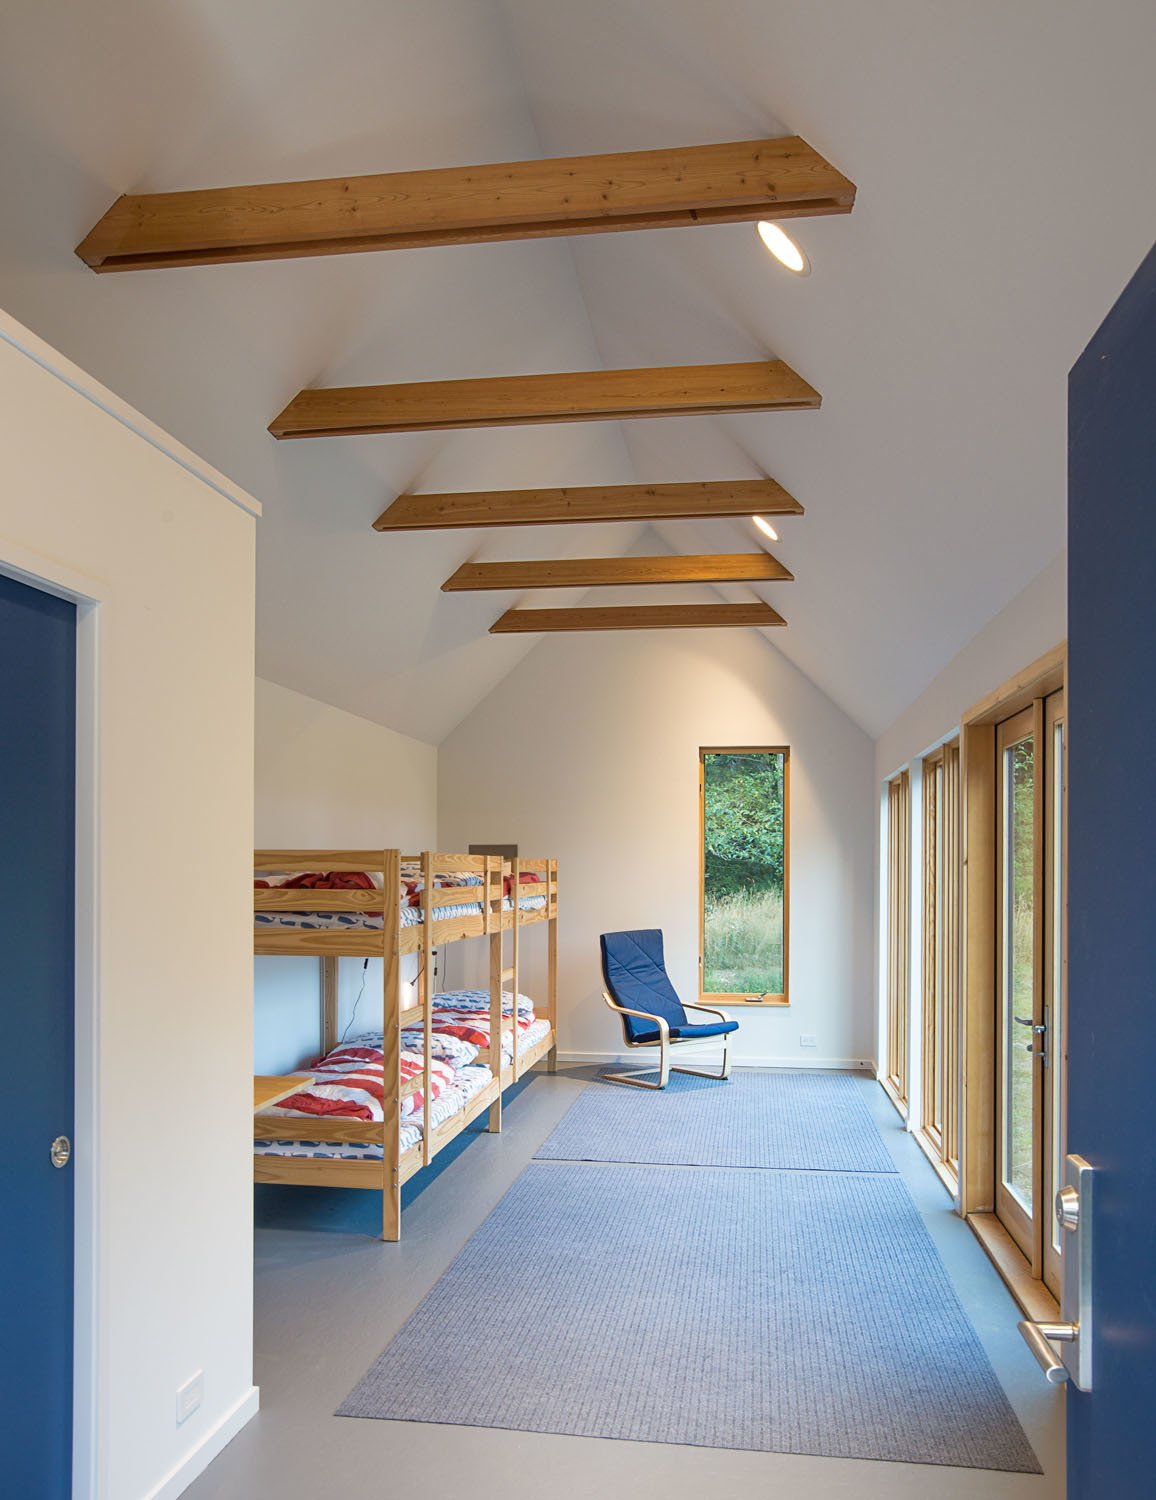 Kids, Bedroom, Toddler, Bunks, Pre-Teen, Neutral, Chair, and Rug An existing structure was moved, remodeled, and repurposed as a bunkroom.  Best Kids Pre-Teen Toddler Photos from The Coyle